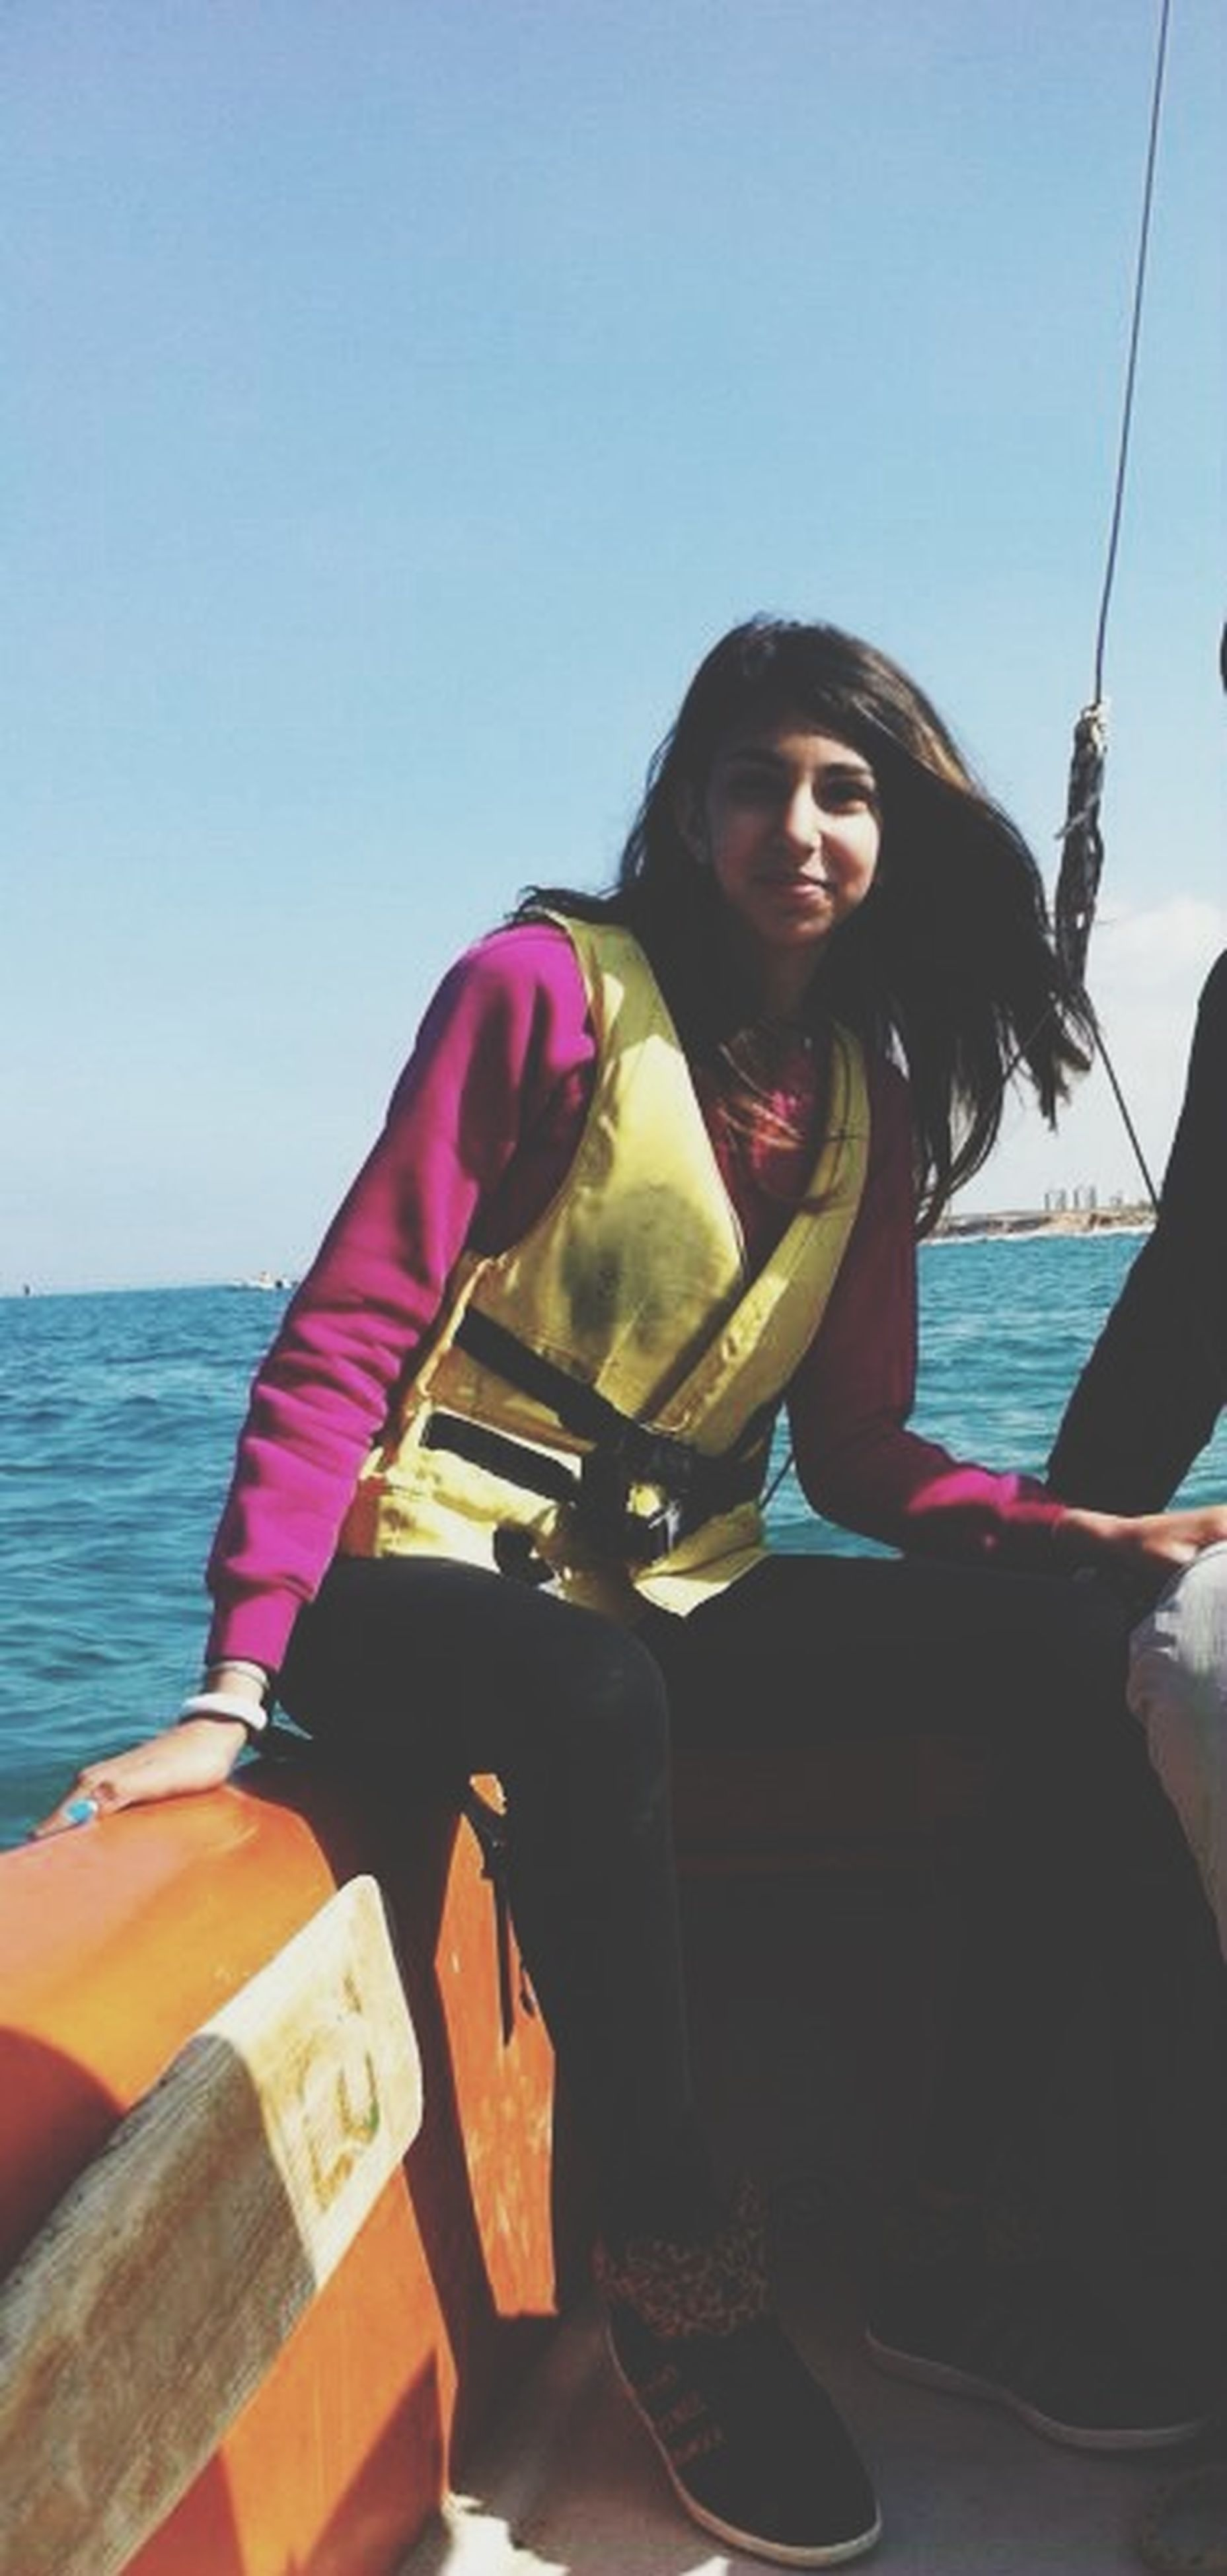 young adult, lifestyles, young women, person, leisure activity, casual clothing, long hair, clear sky, portrait, looking at camera, sea, water, sitting, sunglasses, three quarter length, front view, smiling